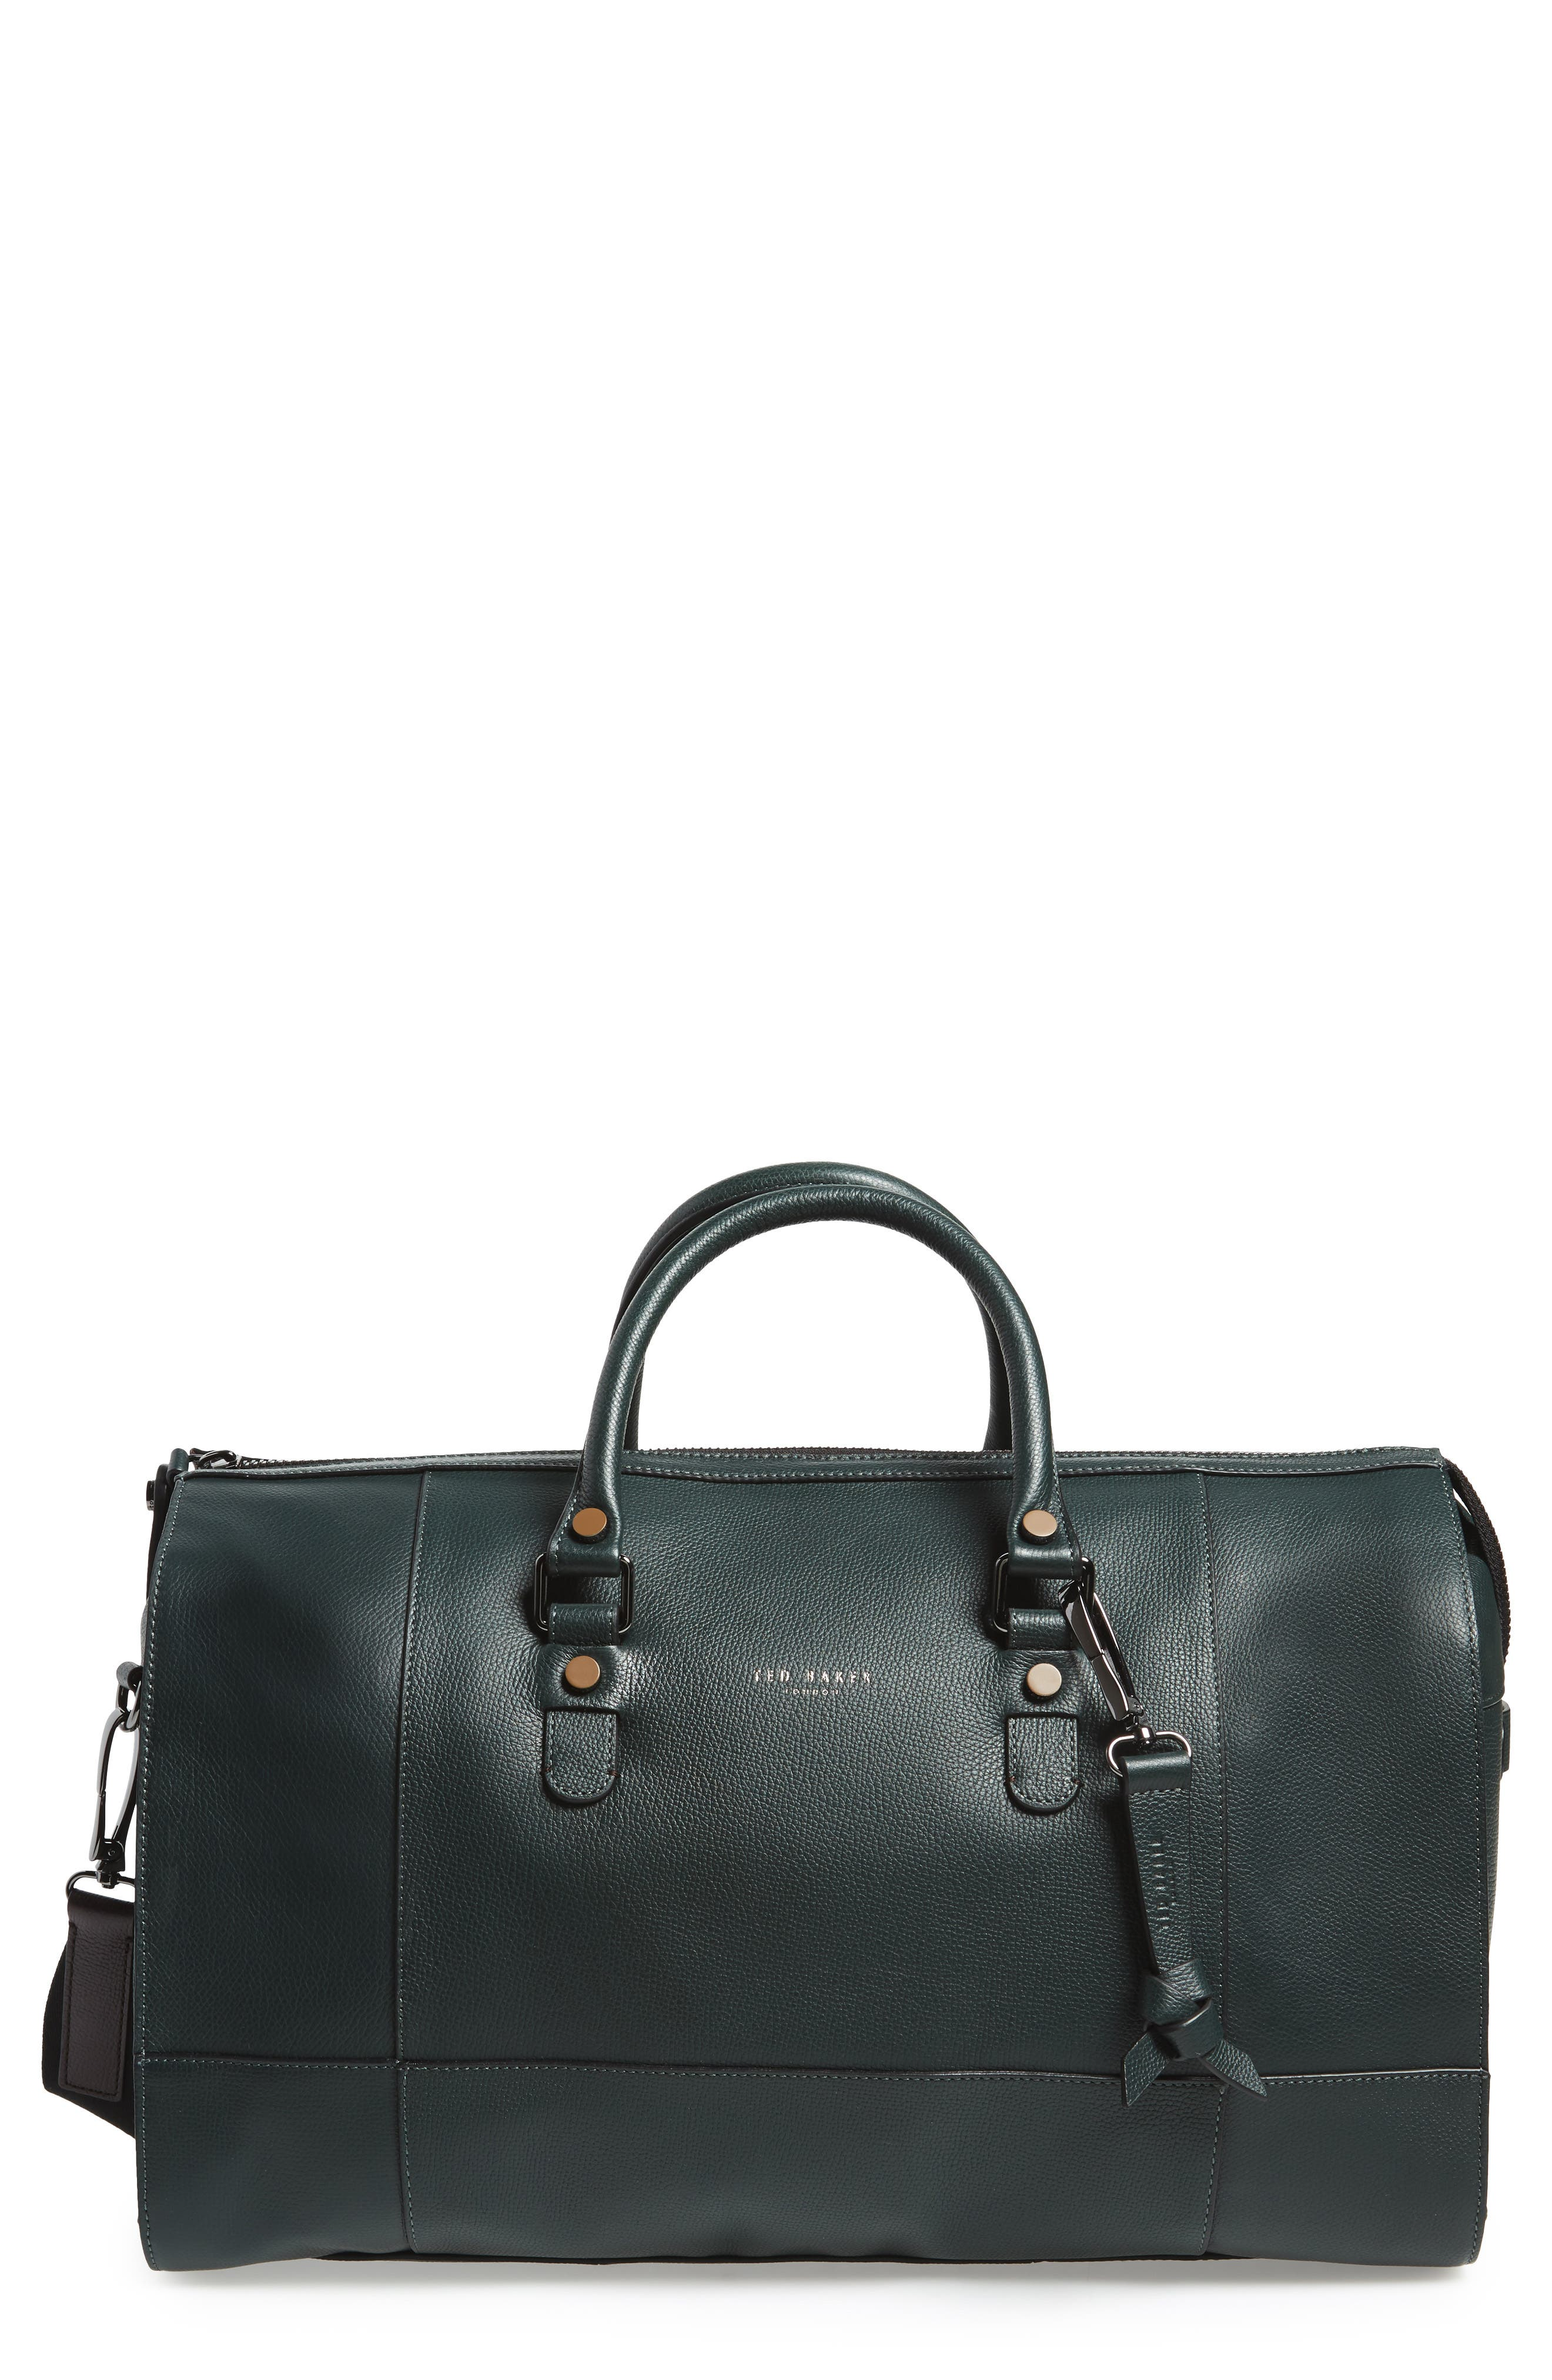 Panthea Leather Duffel Bag,                         Main,                         color, 301